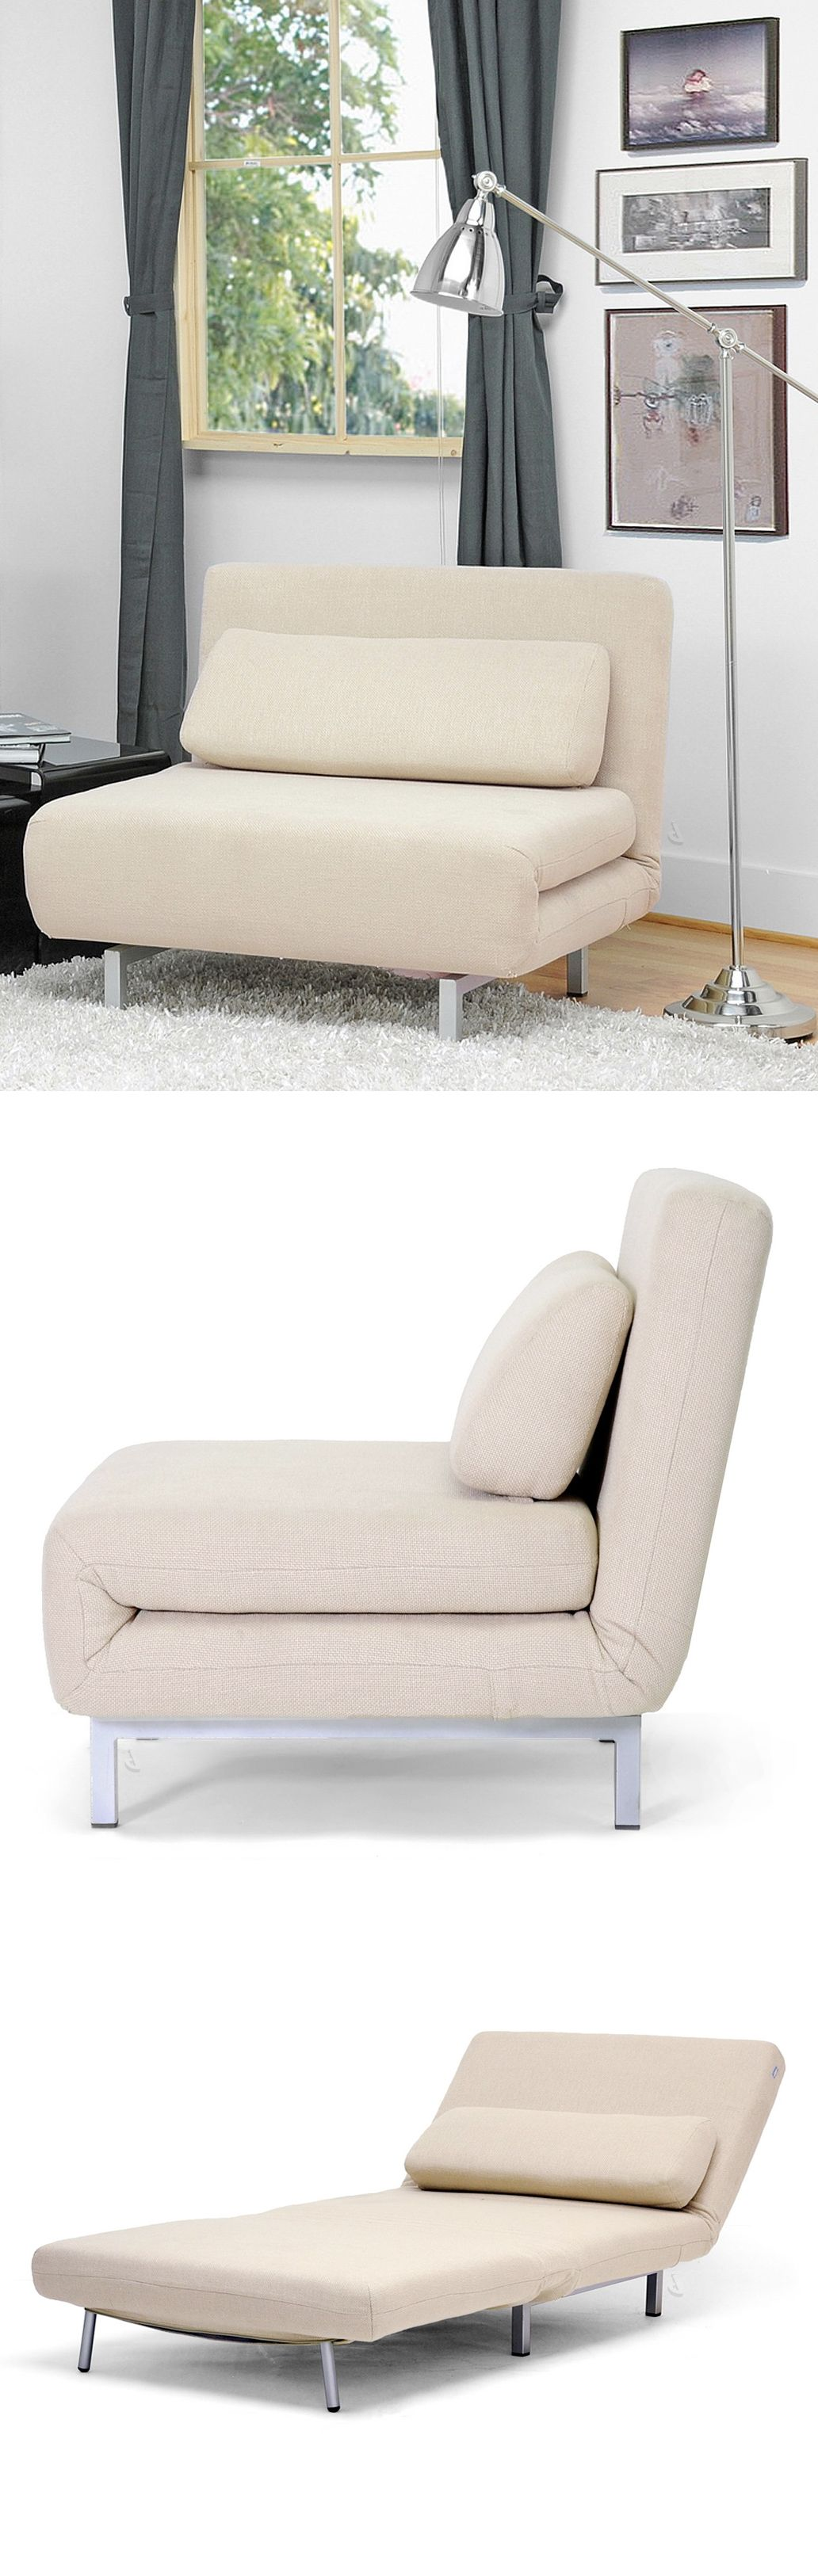 Chair That Opens Into A Bed Best Infant High Comfy Becomes Twin Mattress Sleeper In Seconds Furniture Design